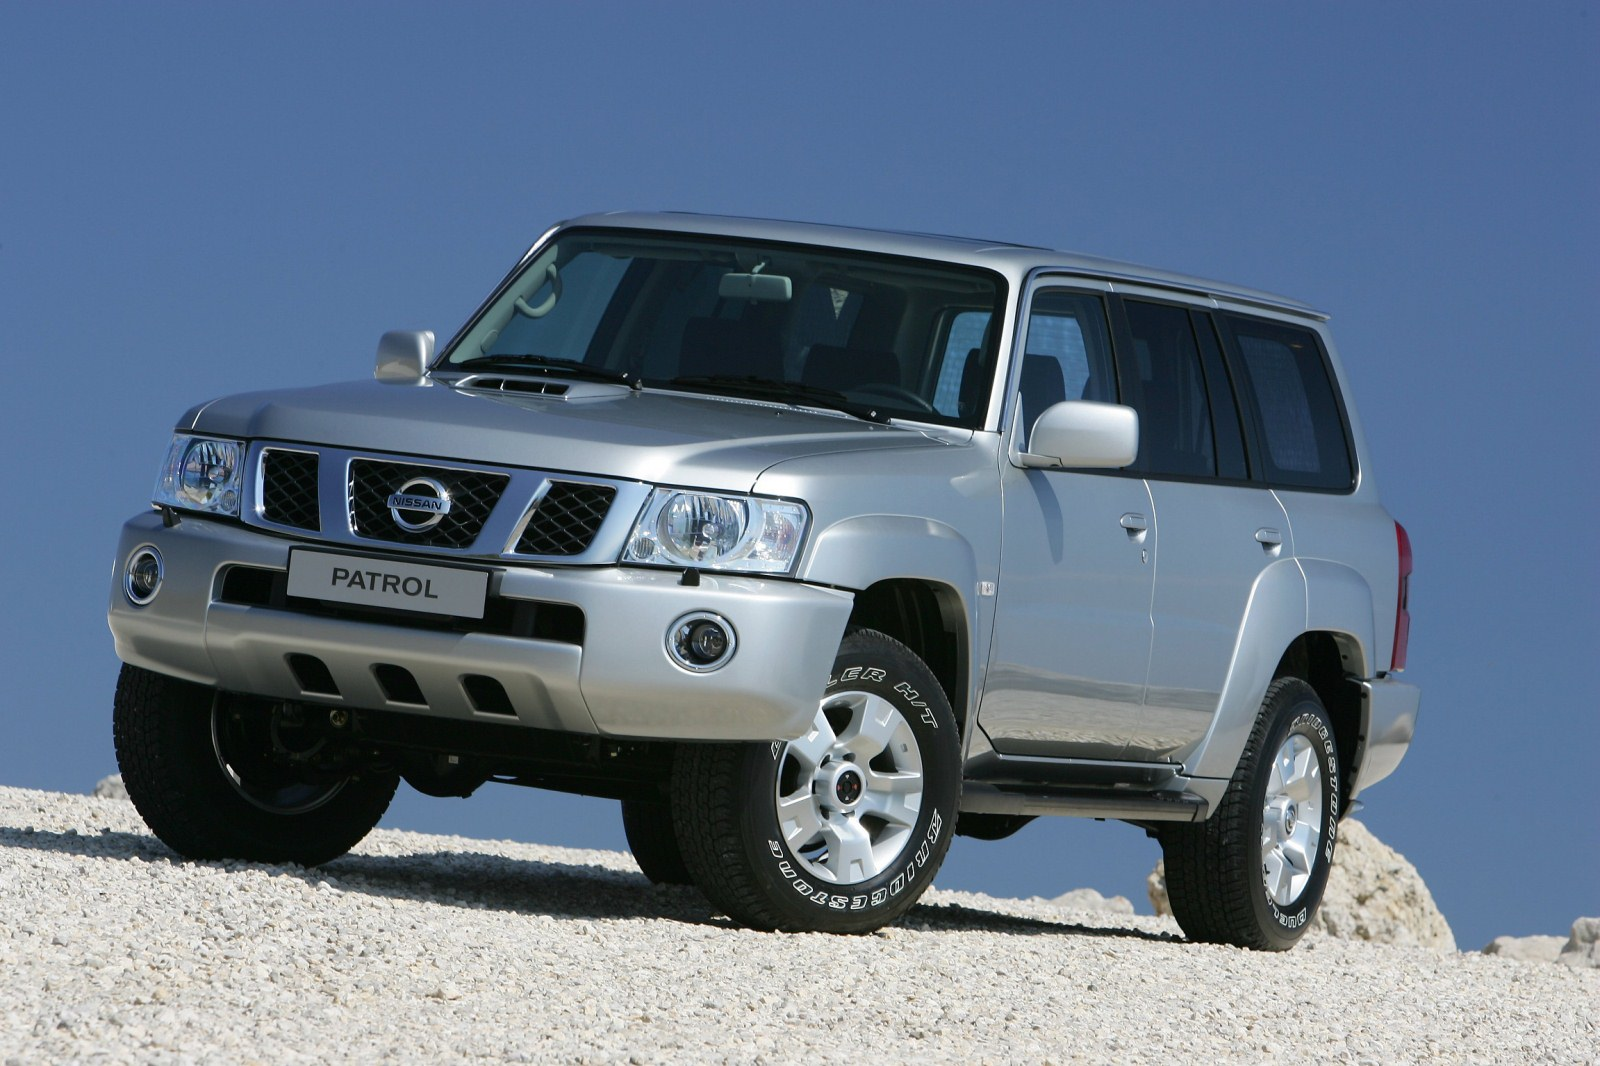 2008 nissan patrol gr ii y61 pictures information and specs auto. Black Bedroom Furniture Sets. Home Design Ideas